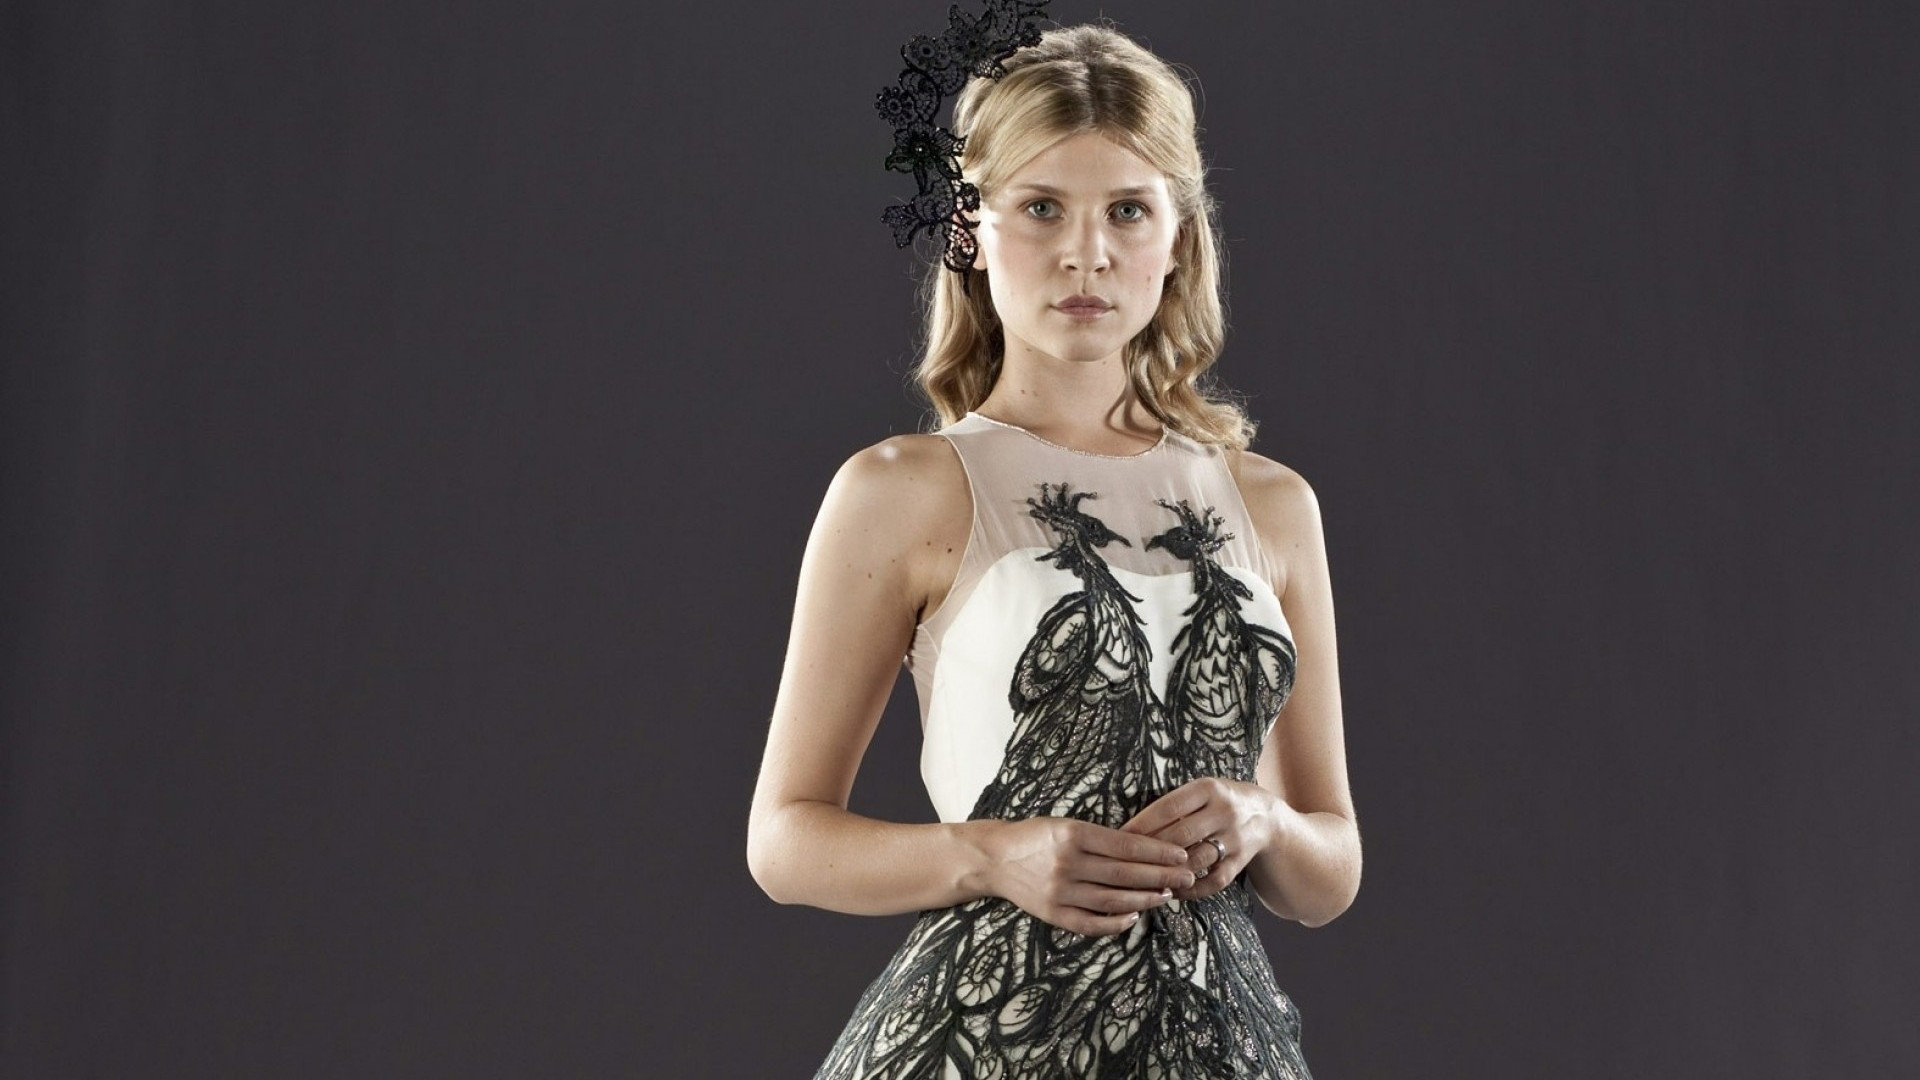 1920x1080 - Clemence Poesy Wallpapers 27